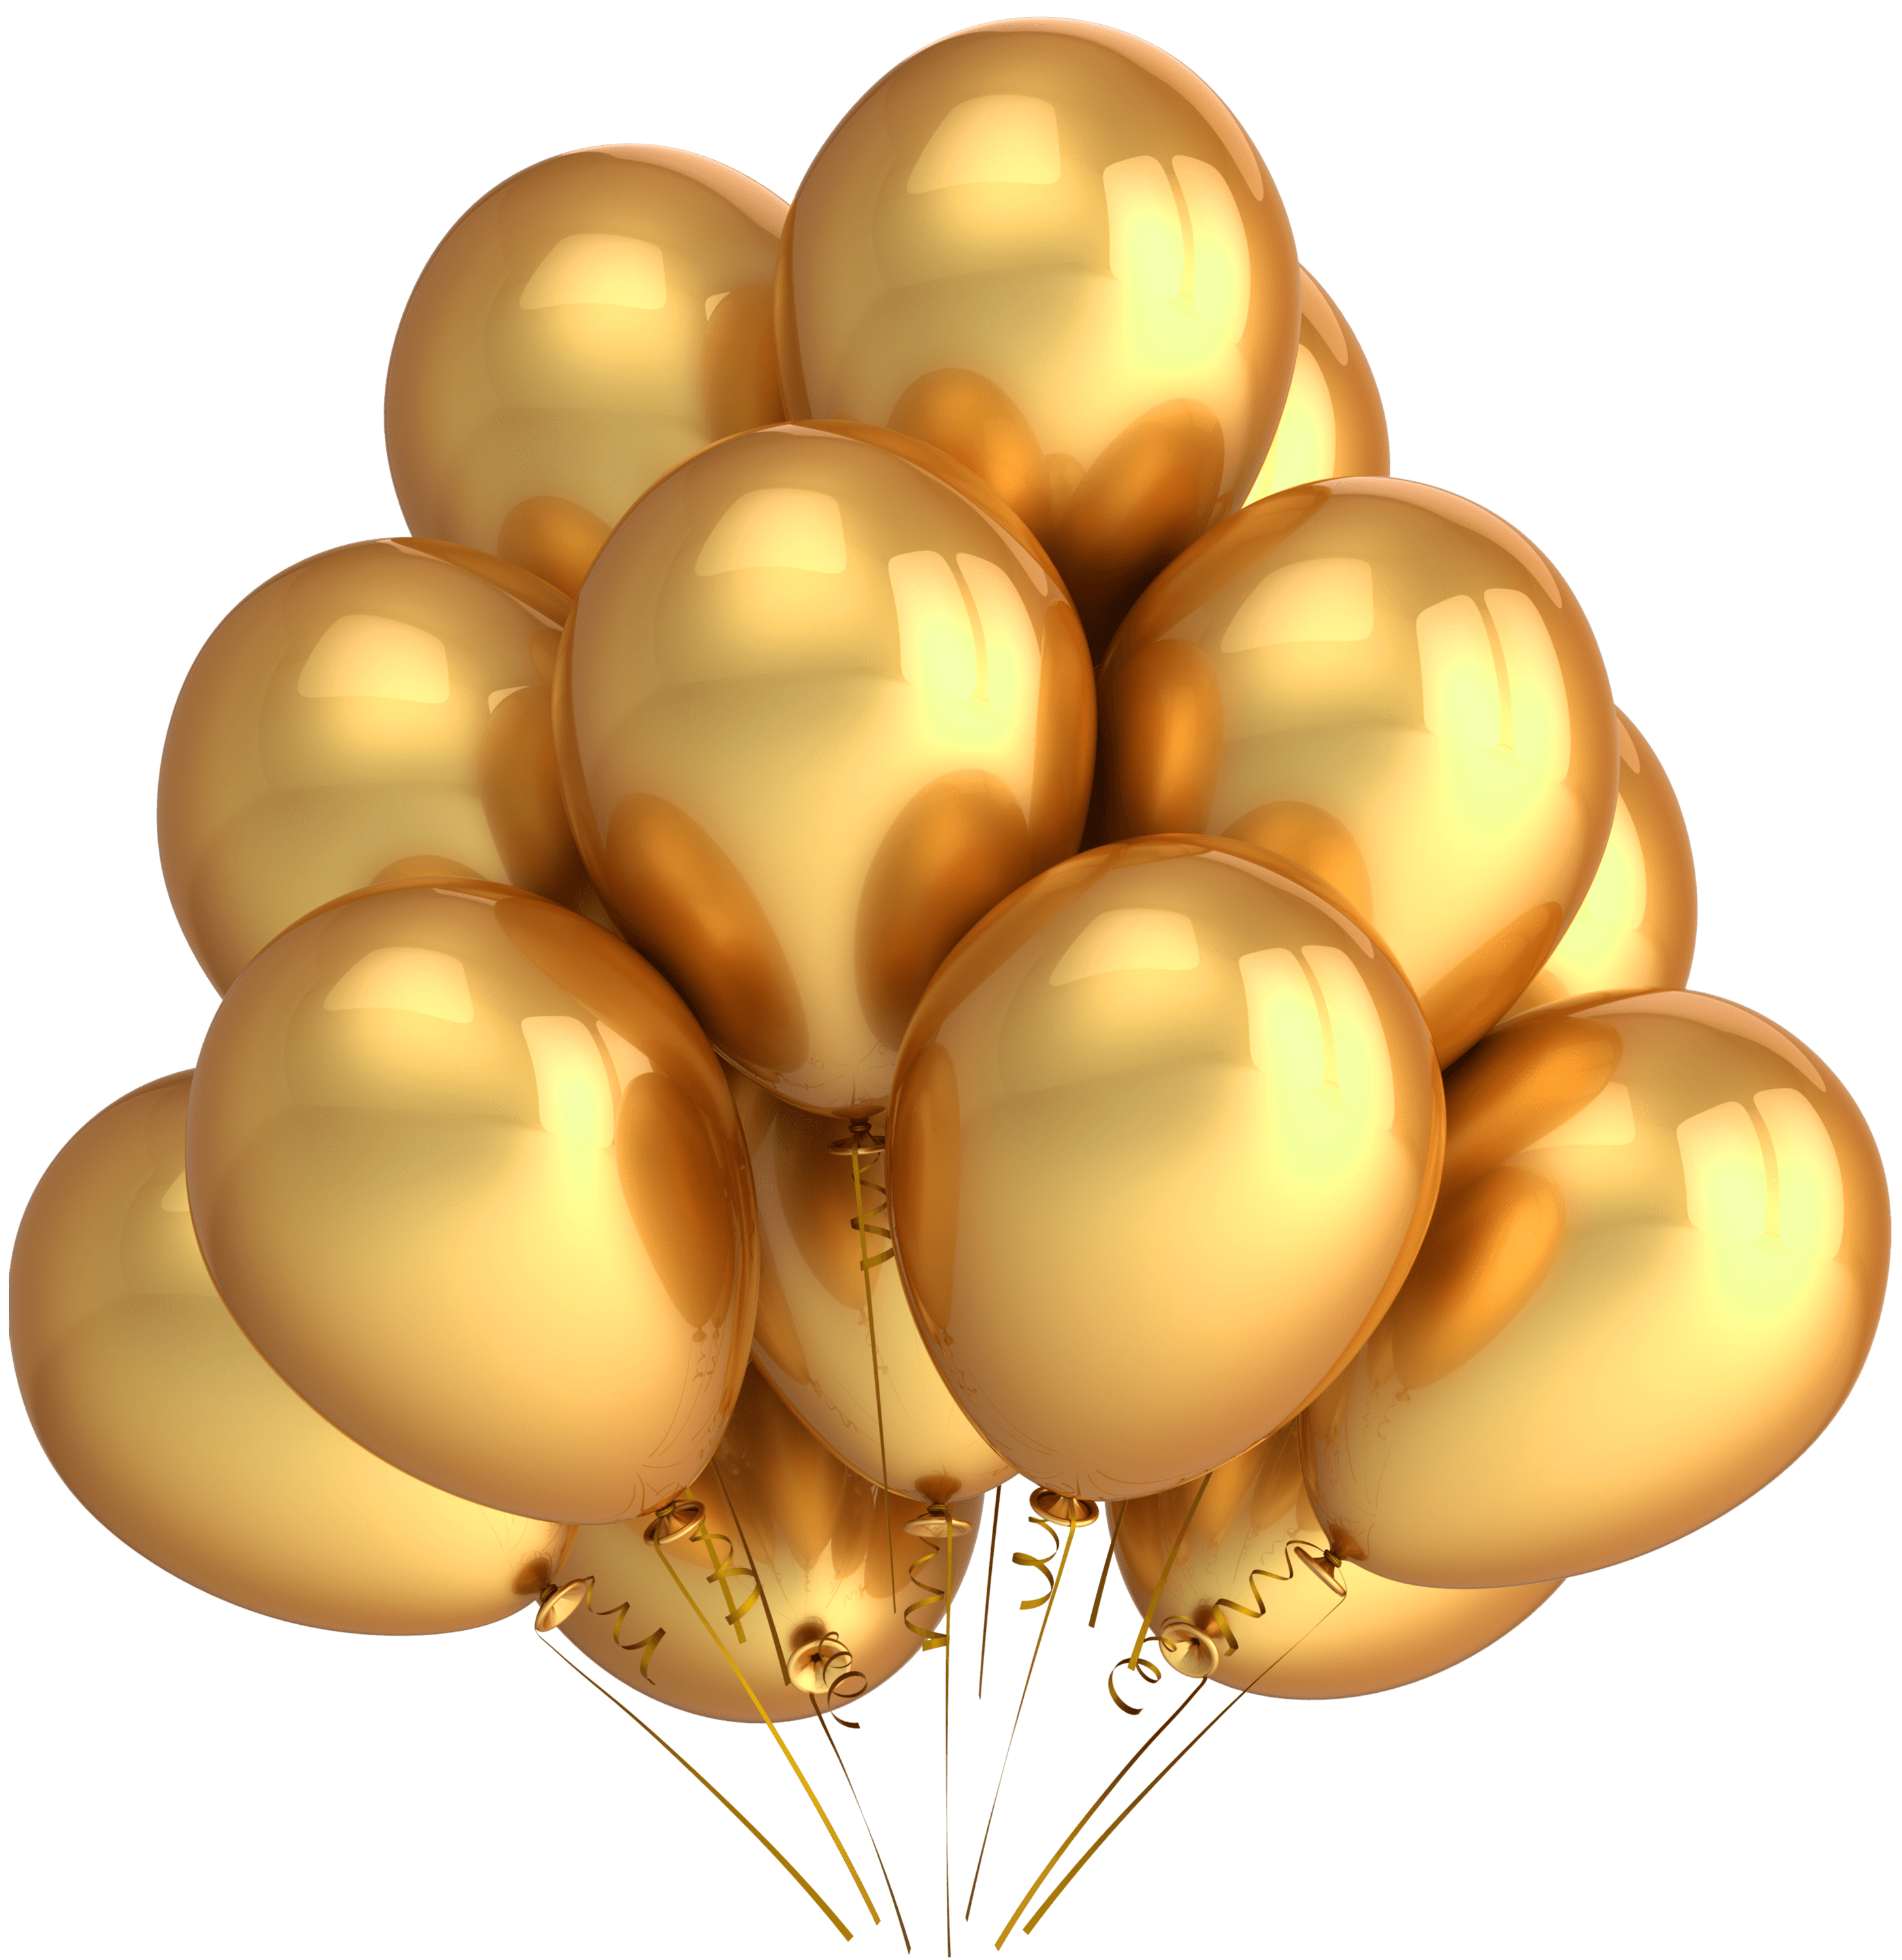 golden balloons transparent png stickpng